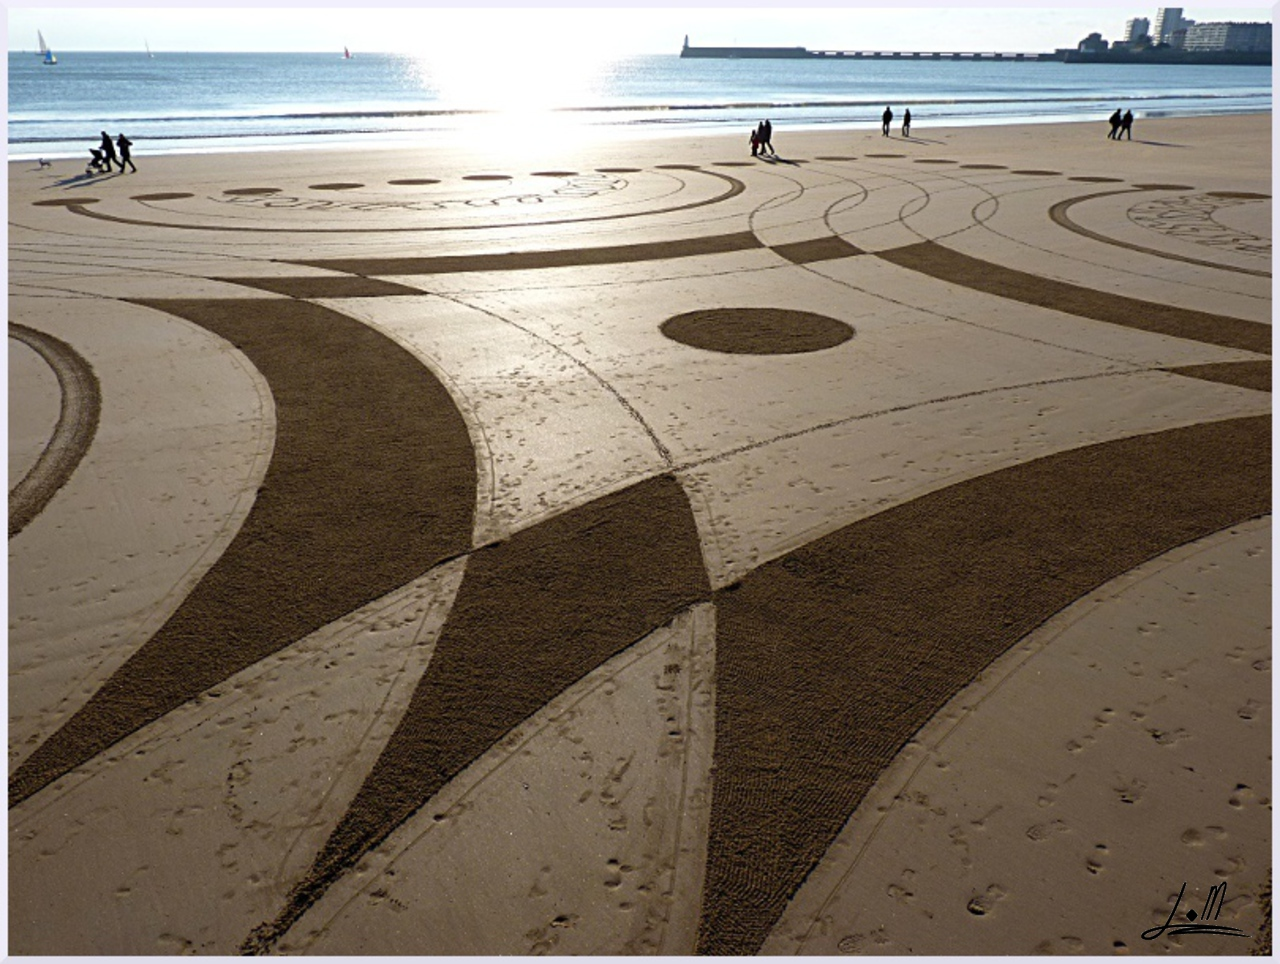 Fresque Beach art Seventeen, Michel Jobard